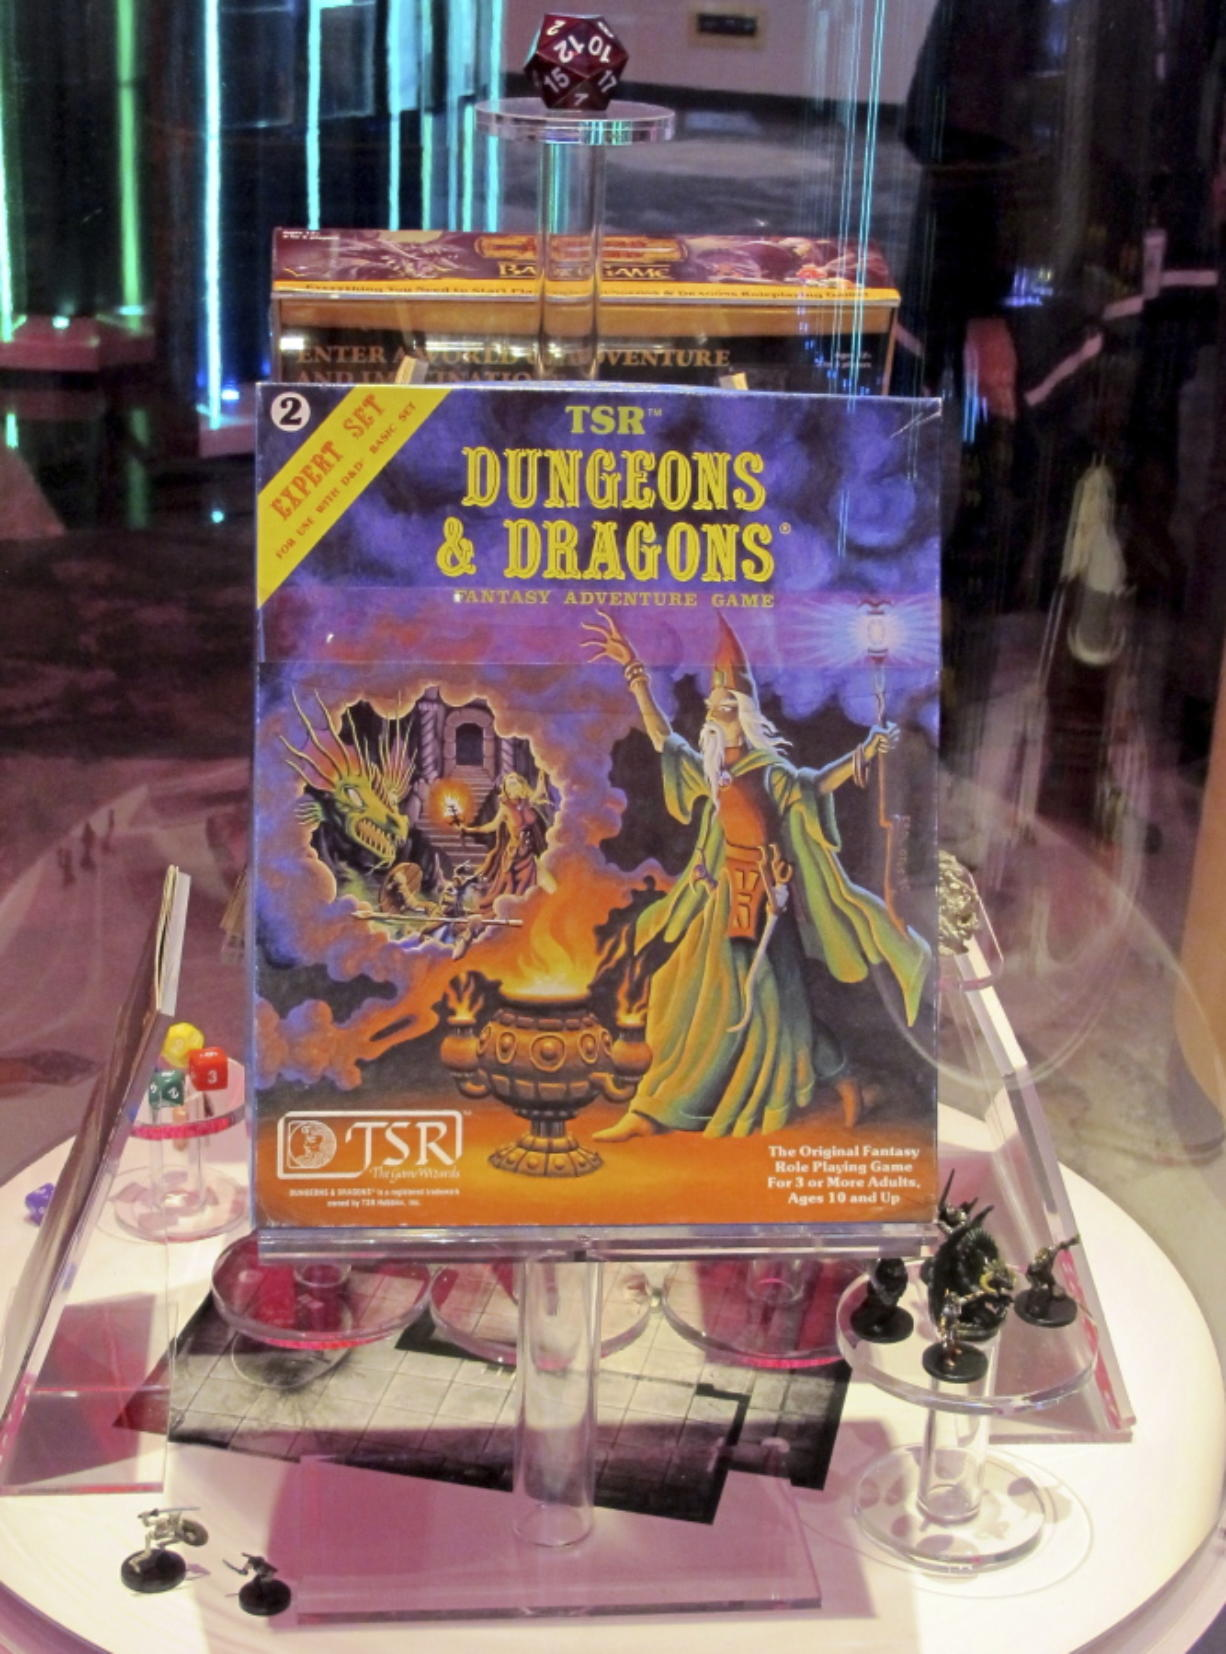 Dungeons & Dragons is on display after being inducted Thursday into the National Toy Hall of Fame at The Strong museum.